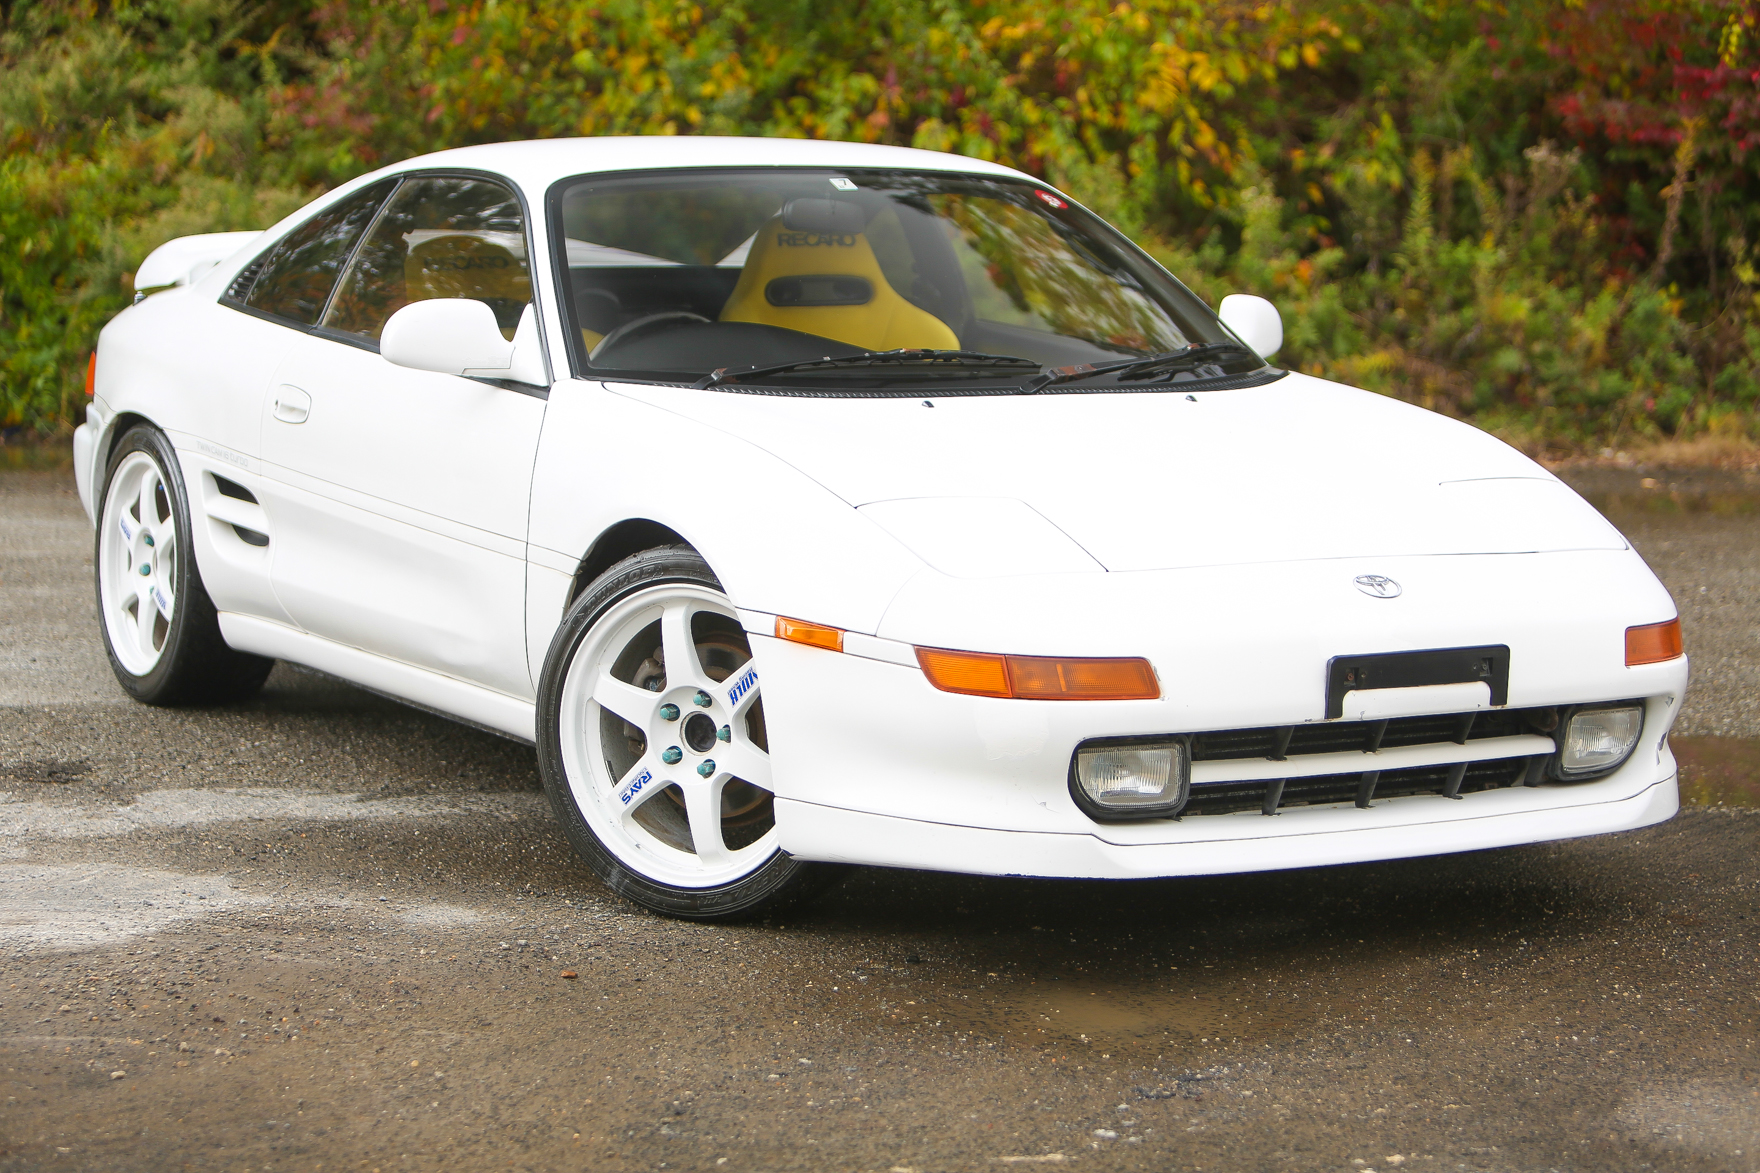 1995 Toyota MR2 GT - $19,950 WITH STOCK SEATS